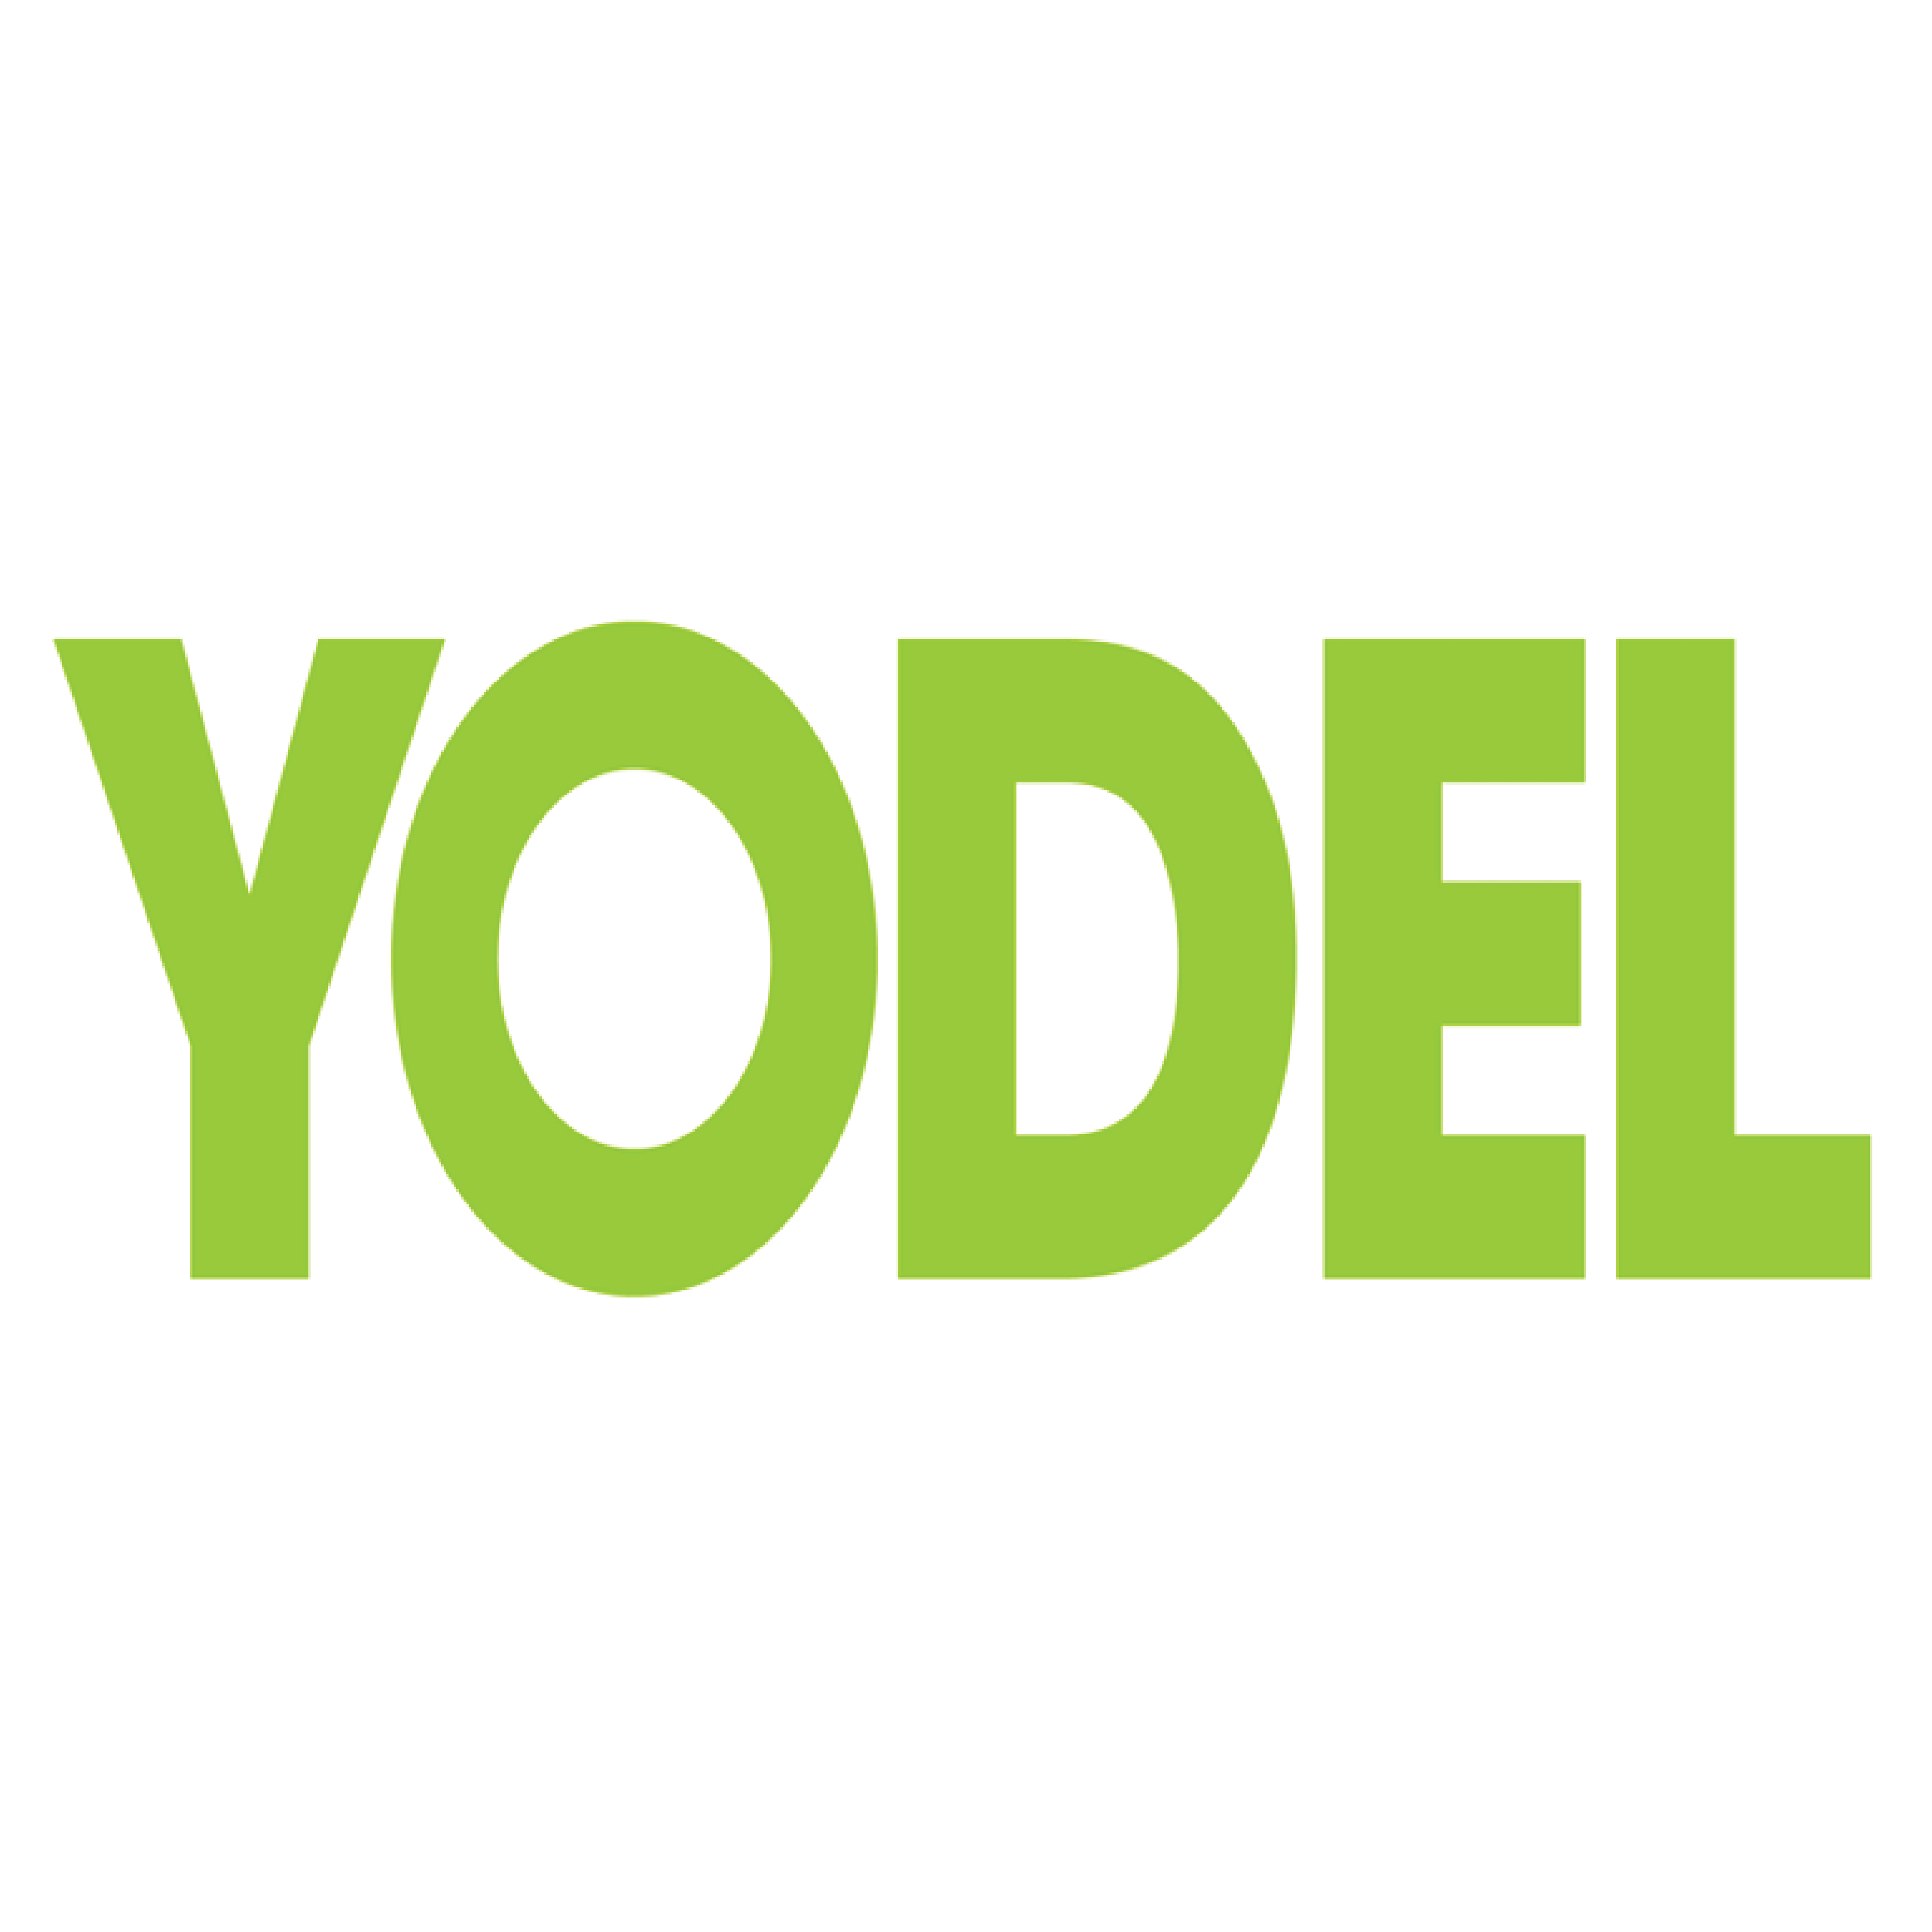 Yodel Shipedge Integration